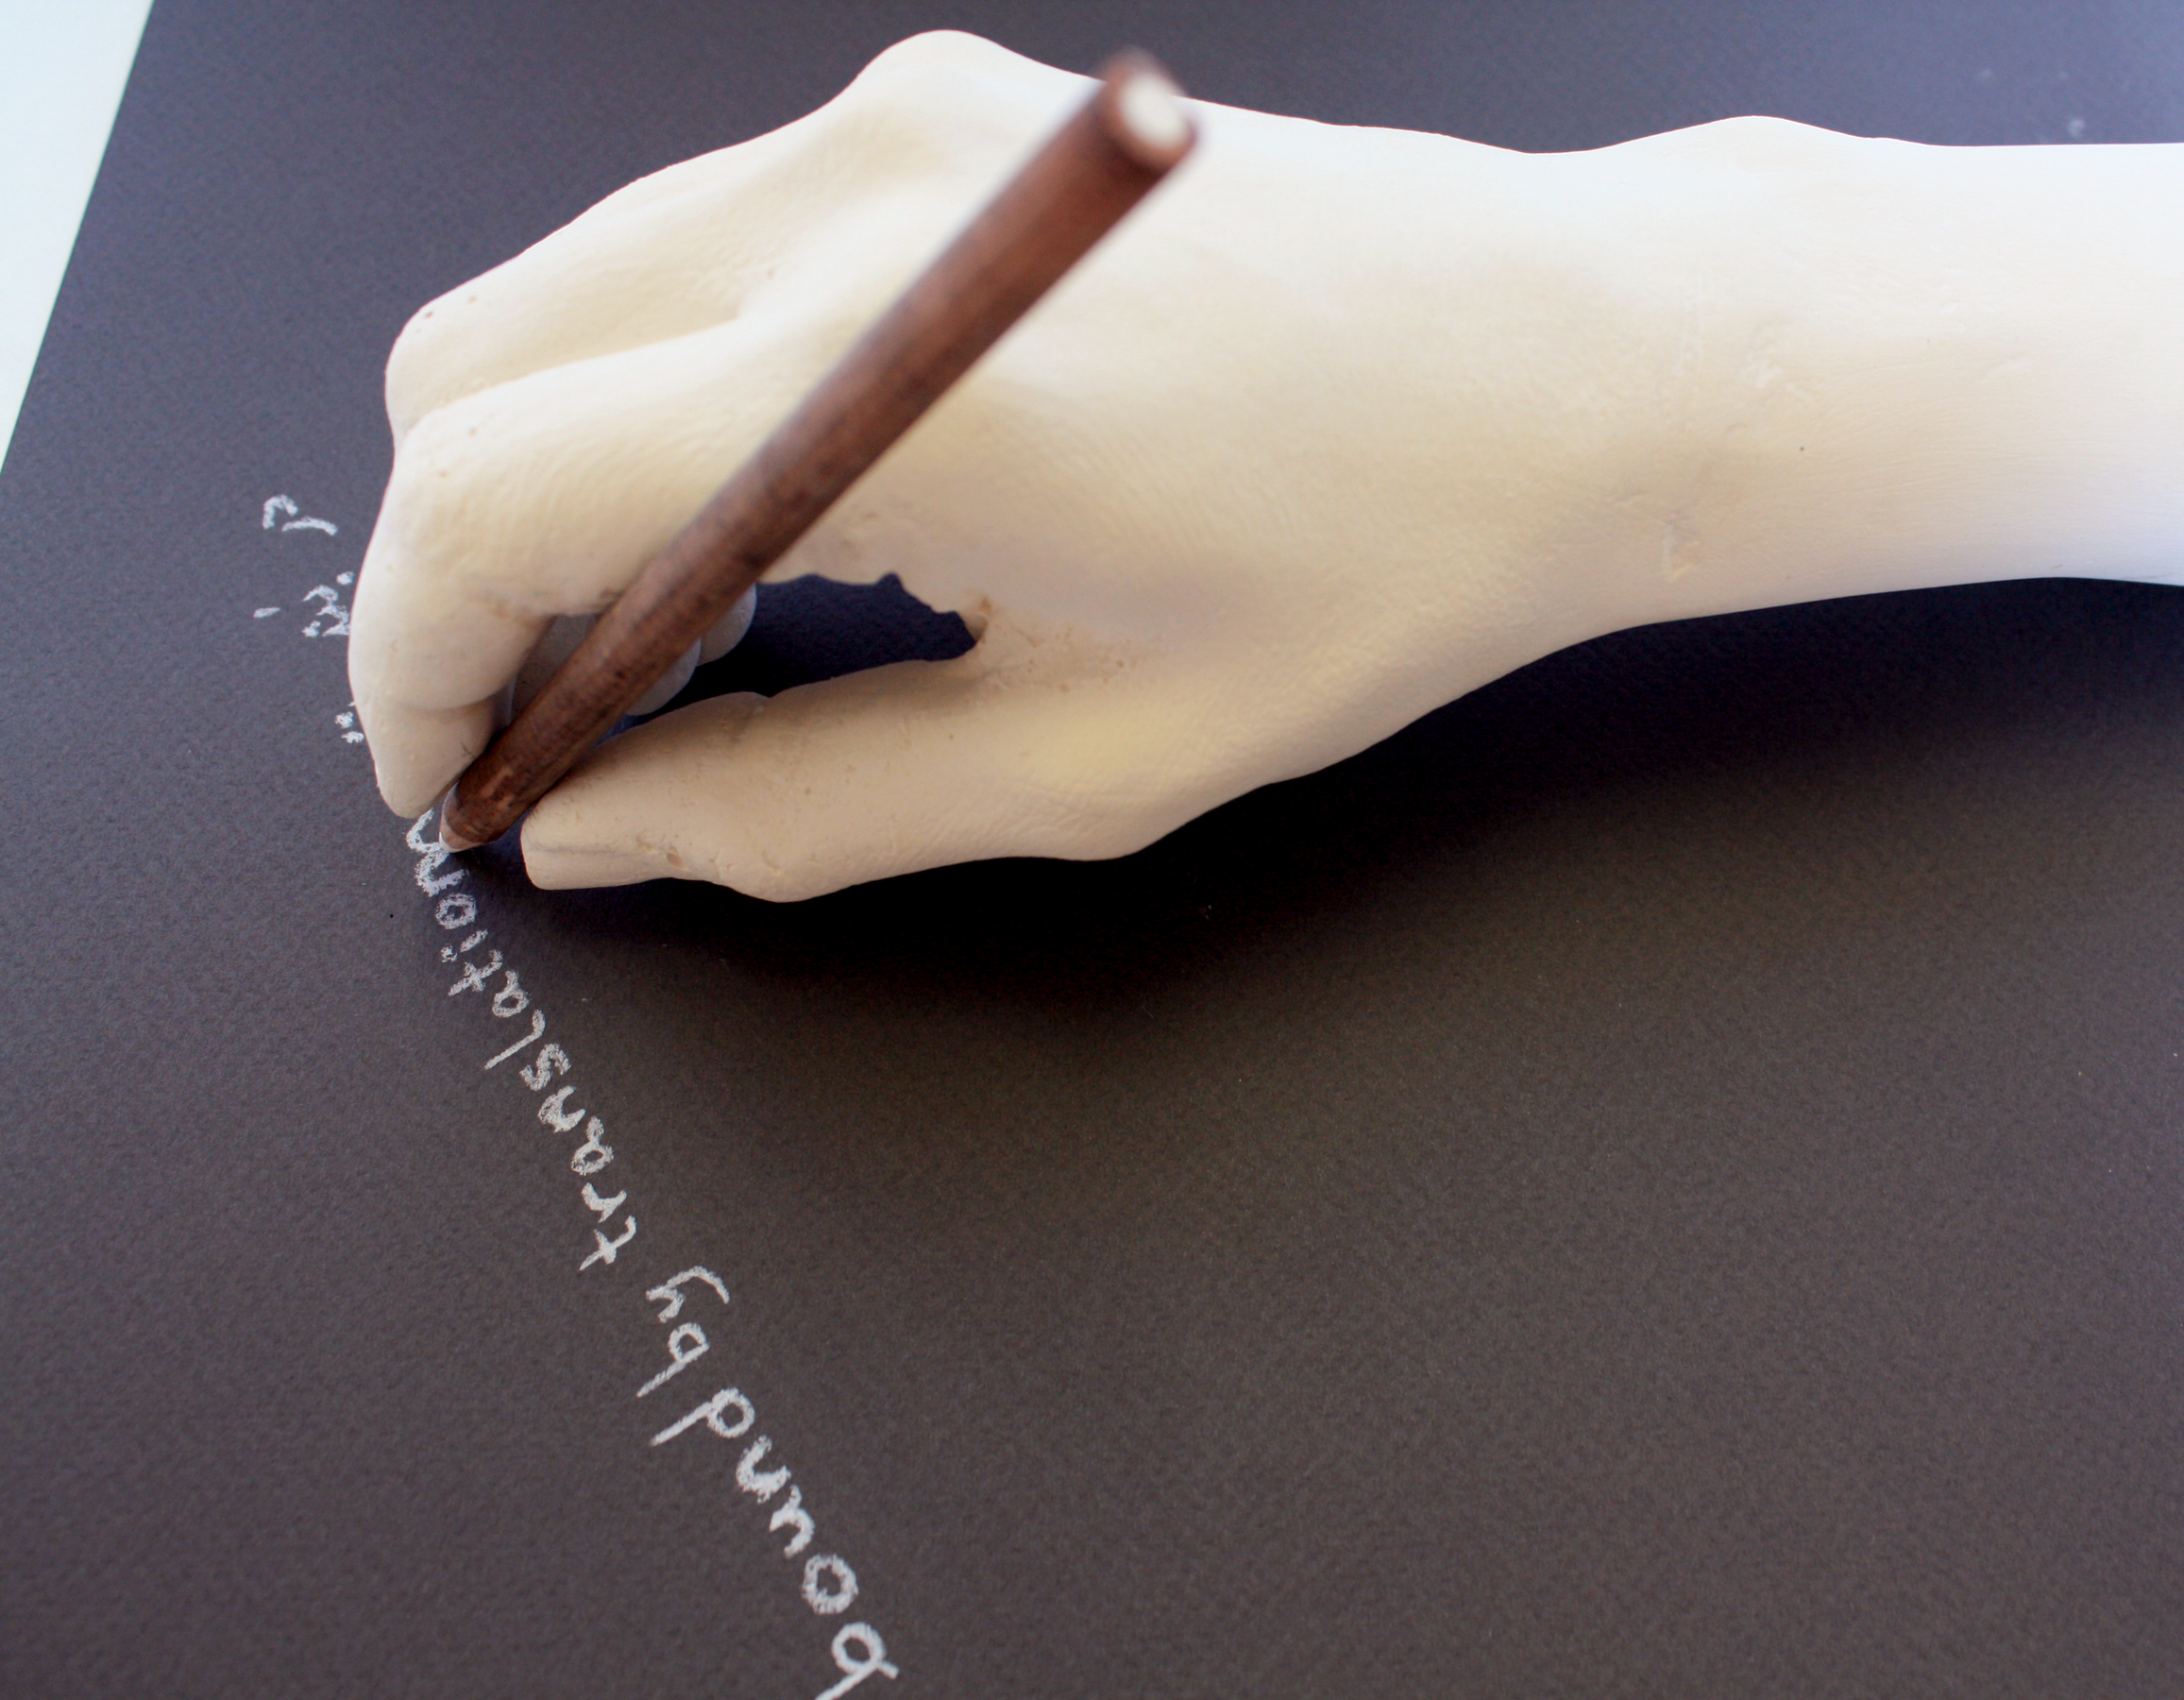 Bound in translation, 2015  Plaster cast, pencil and paper, variable dimension